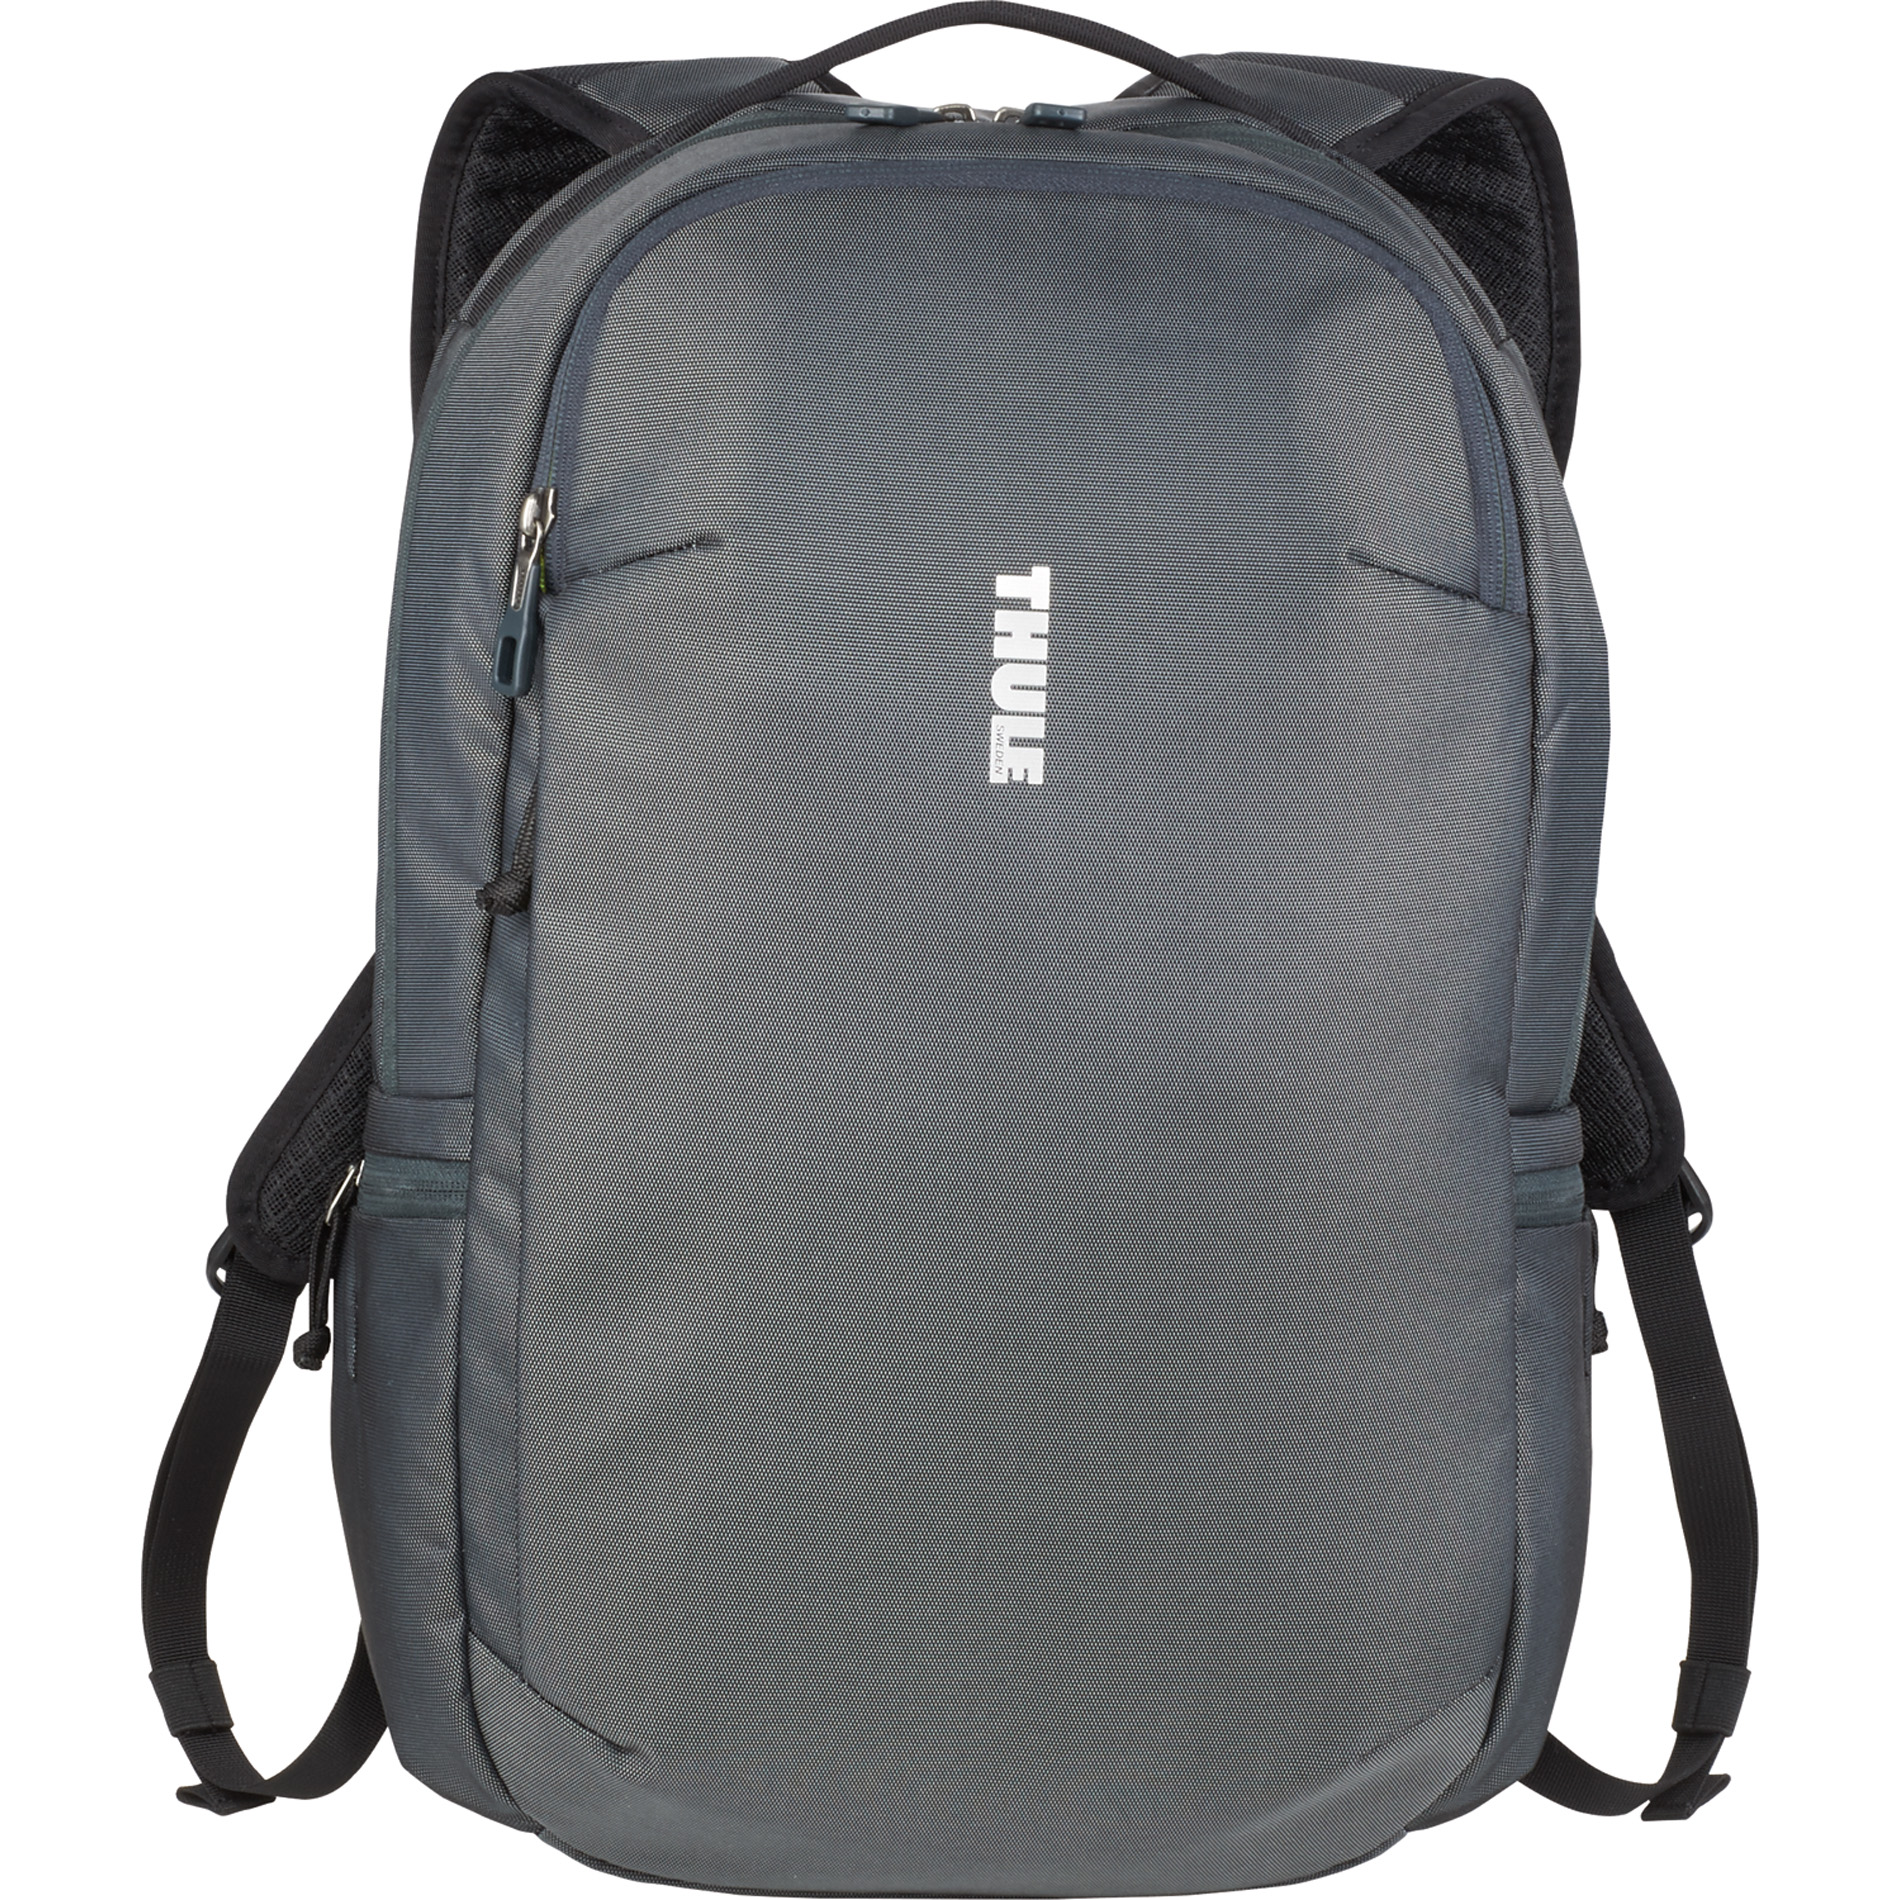 "Thule 9020-51 - Subterra 15"" Laptop Backpack"